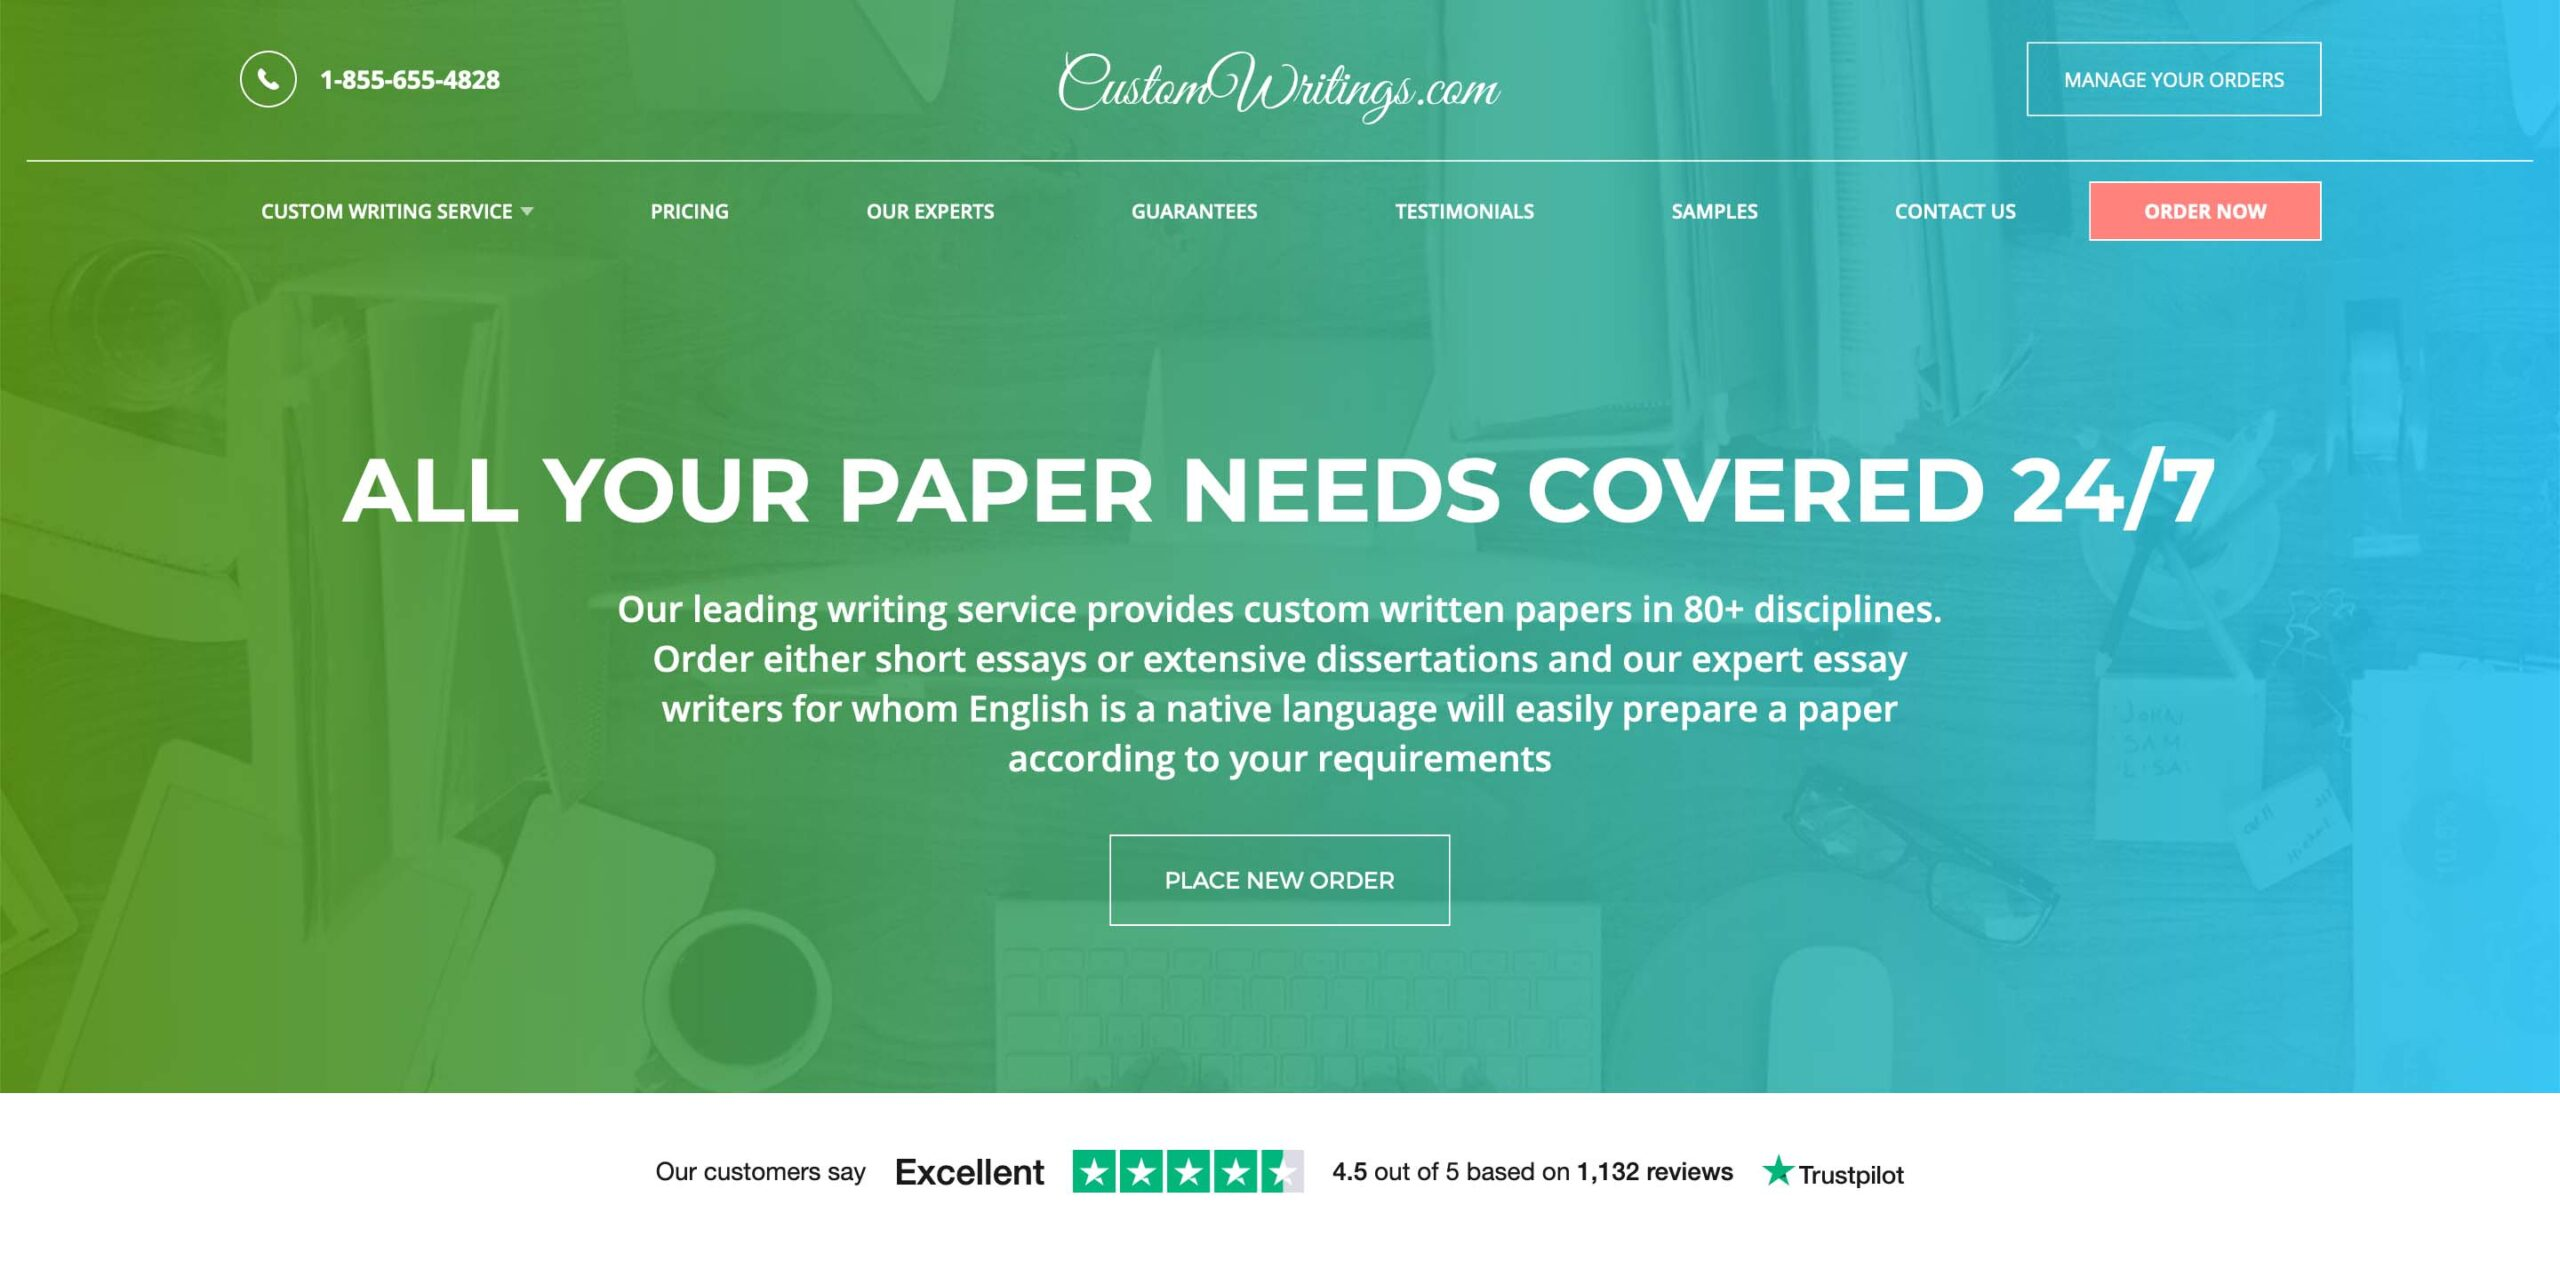 CustomWritings.com website